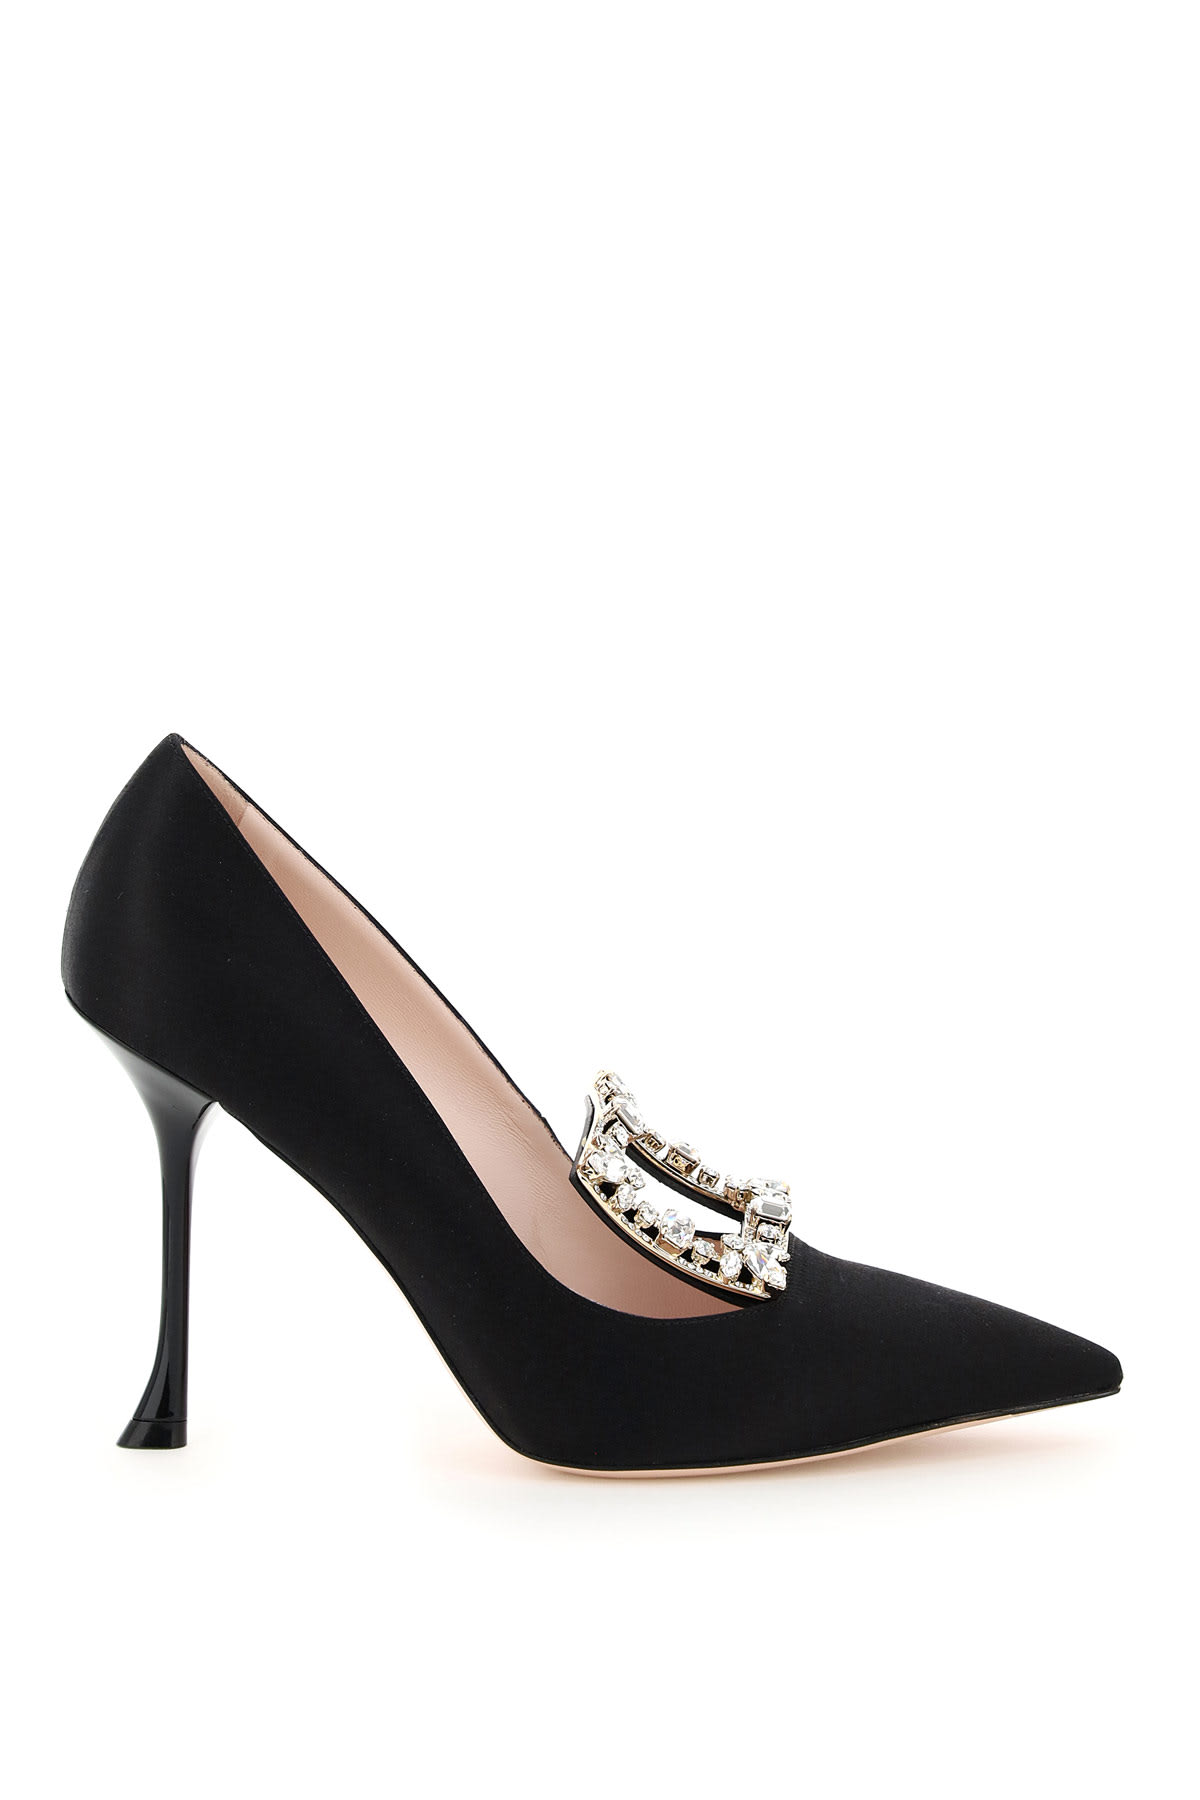 Roger Vivier RV BROOCH 100 PUMP